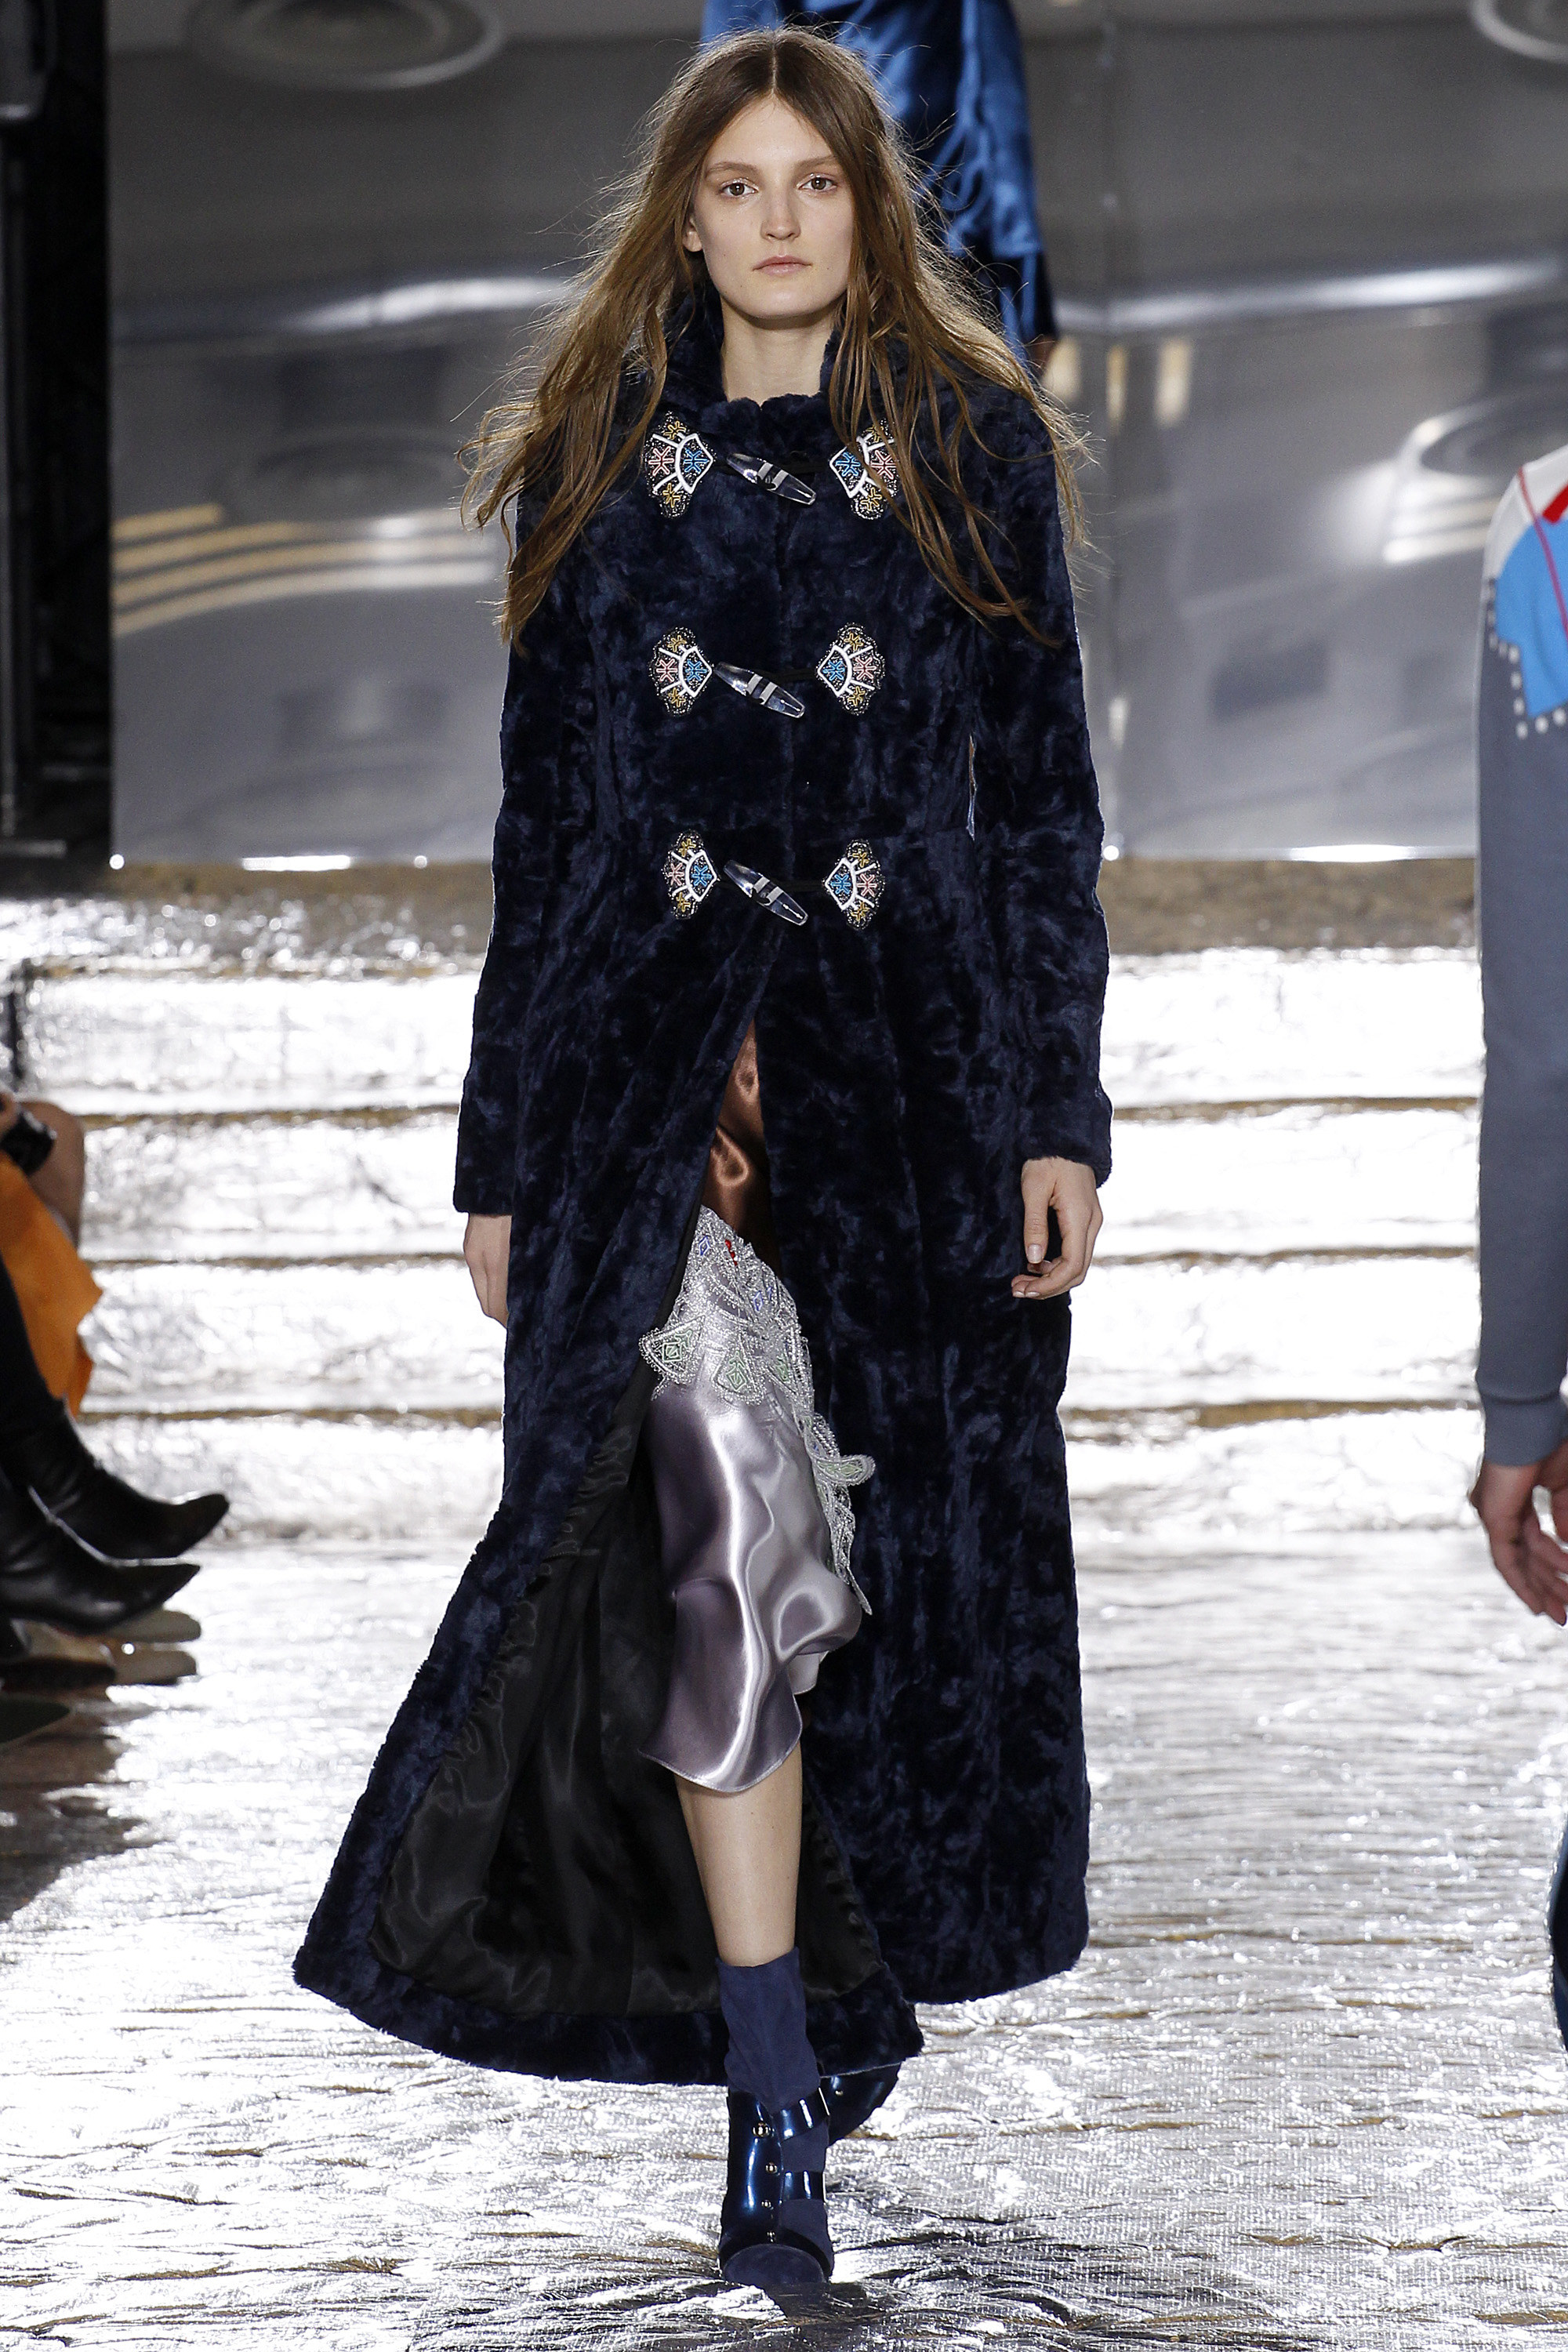 Peter-Pilotto-Autumn-Winter-Fall-2016-London-Fashion-Week-8.jpg